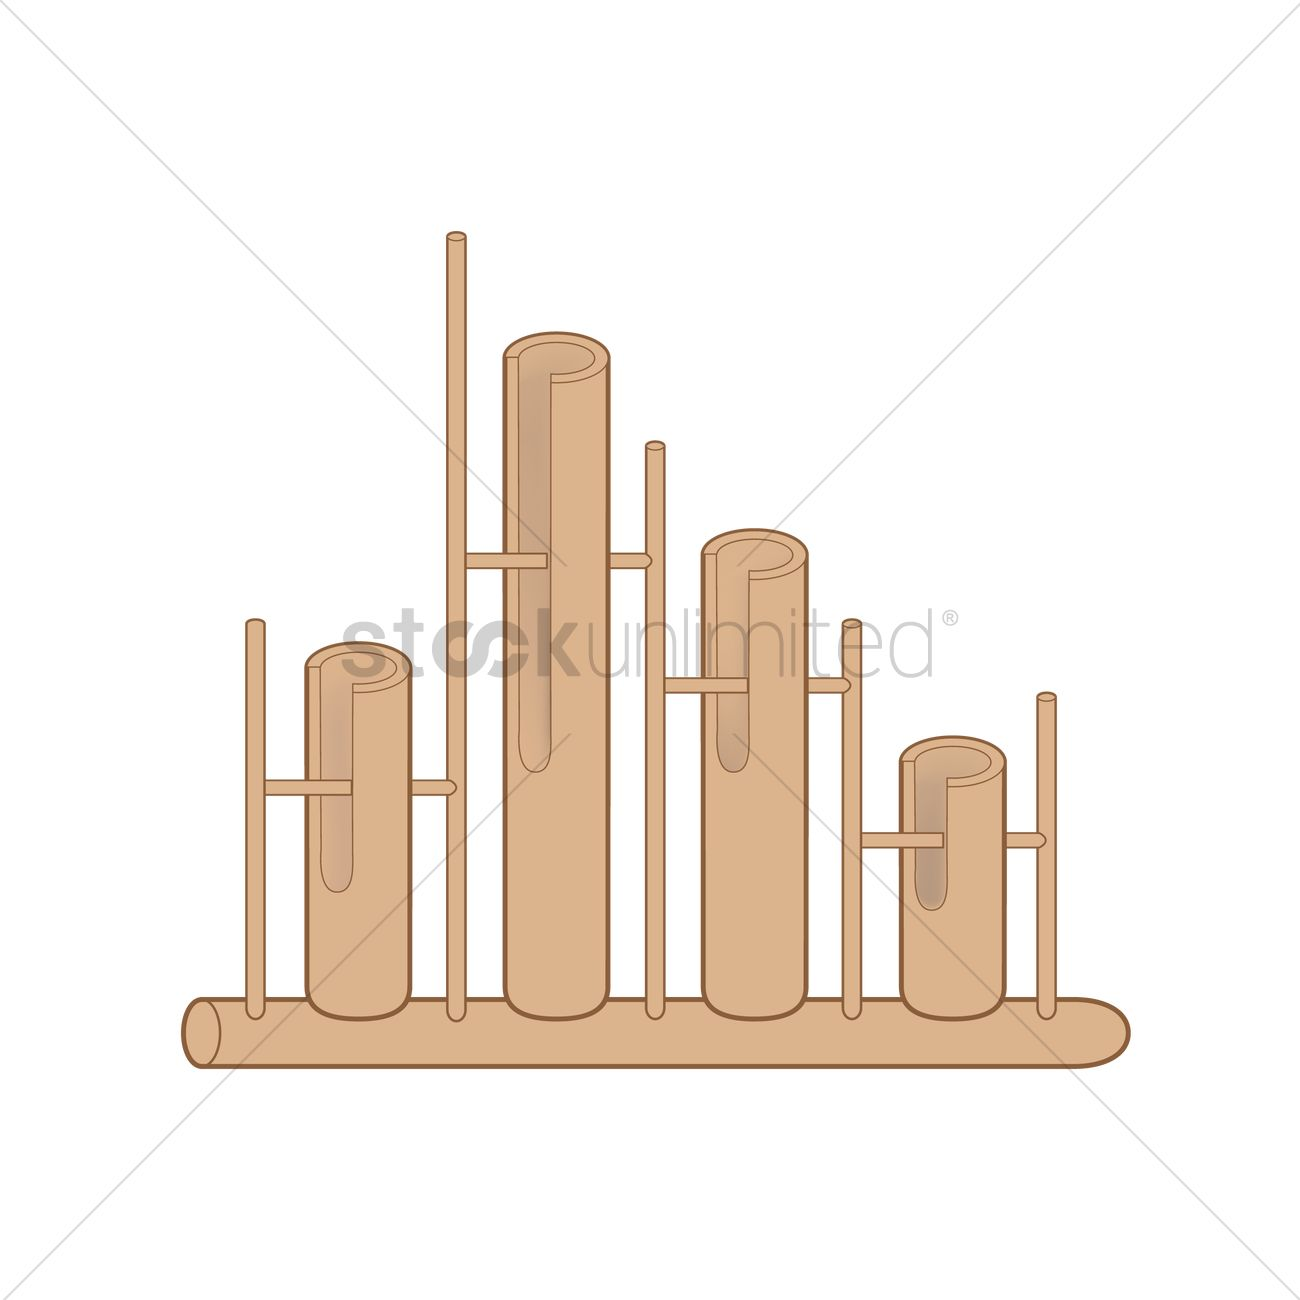 Angklung clipart #8